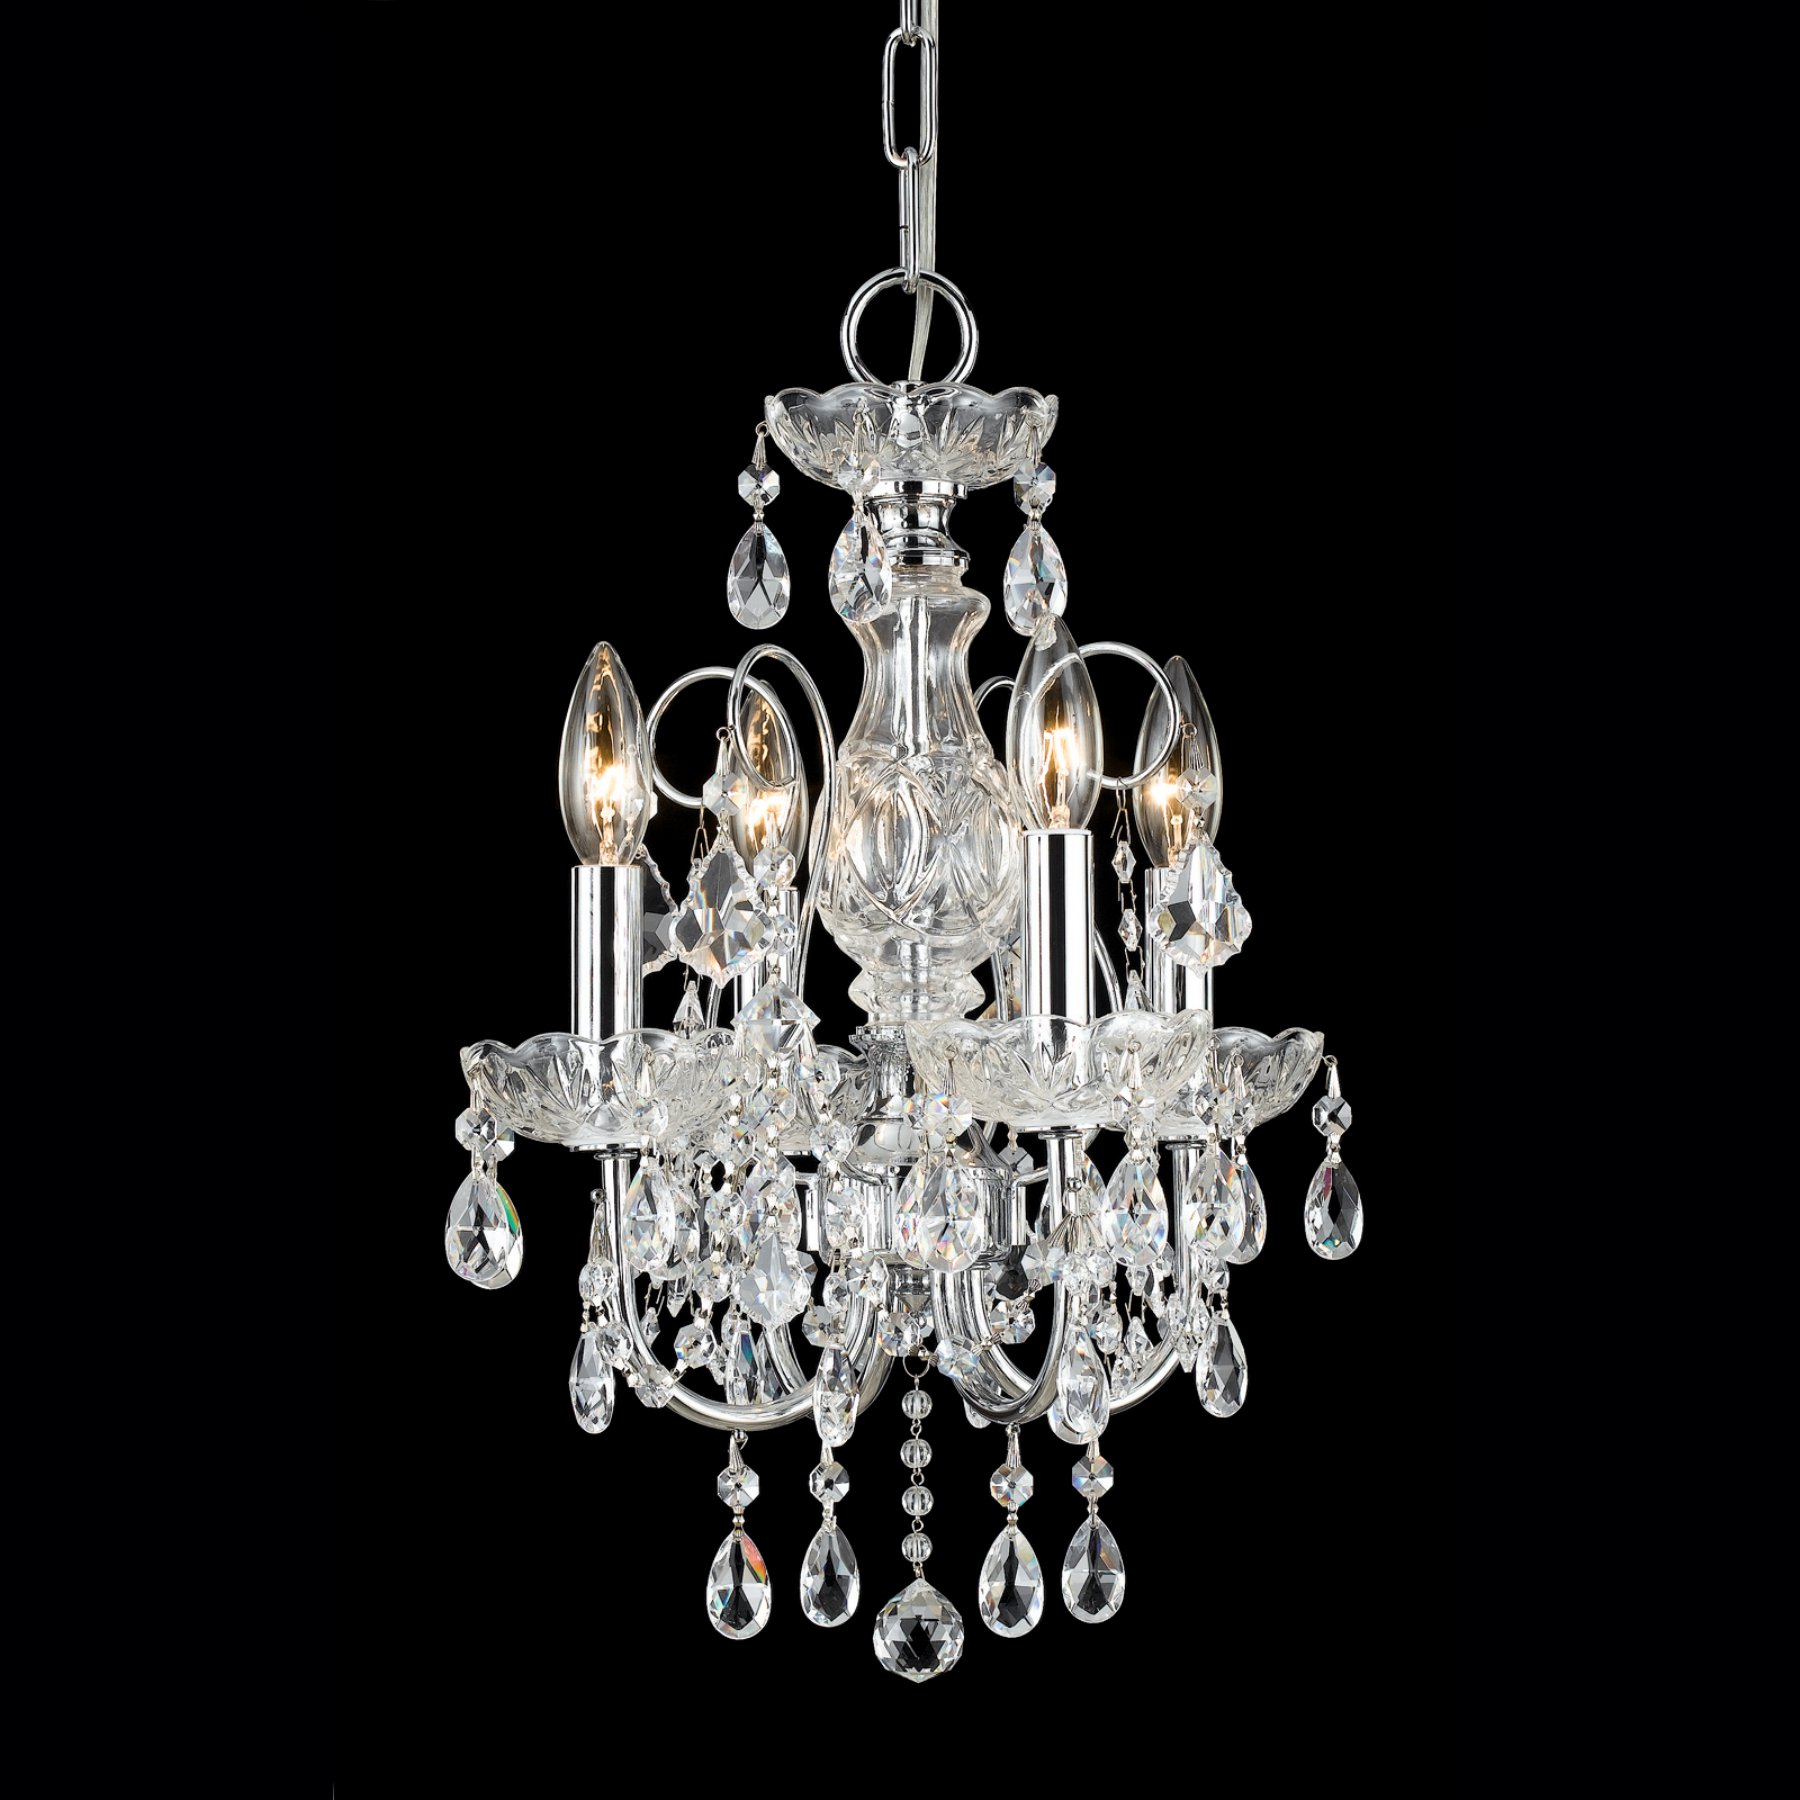 Crystorama Imperial Mini Chandelier - 12w In. Polished Chrome Products In 2019 Lighting